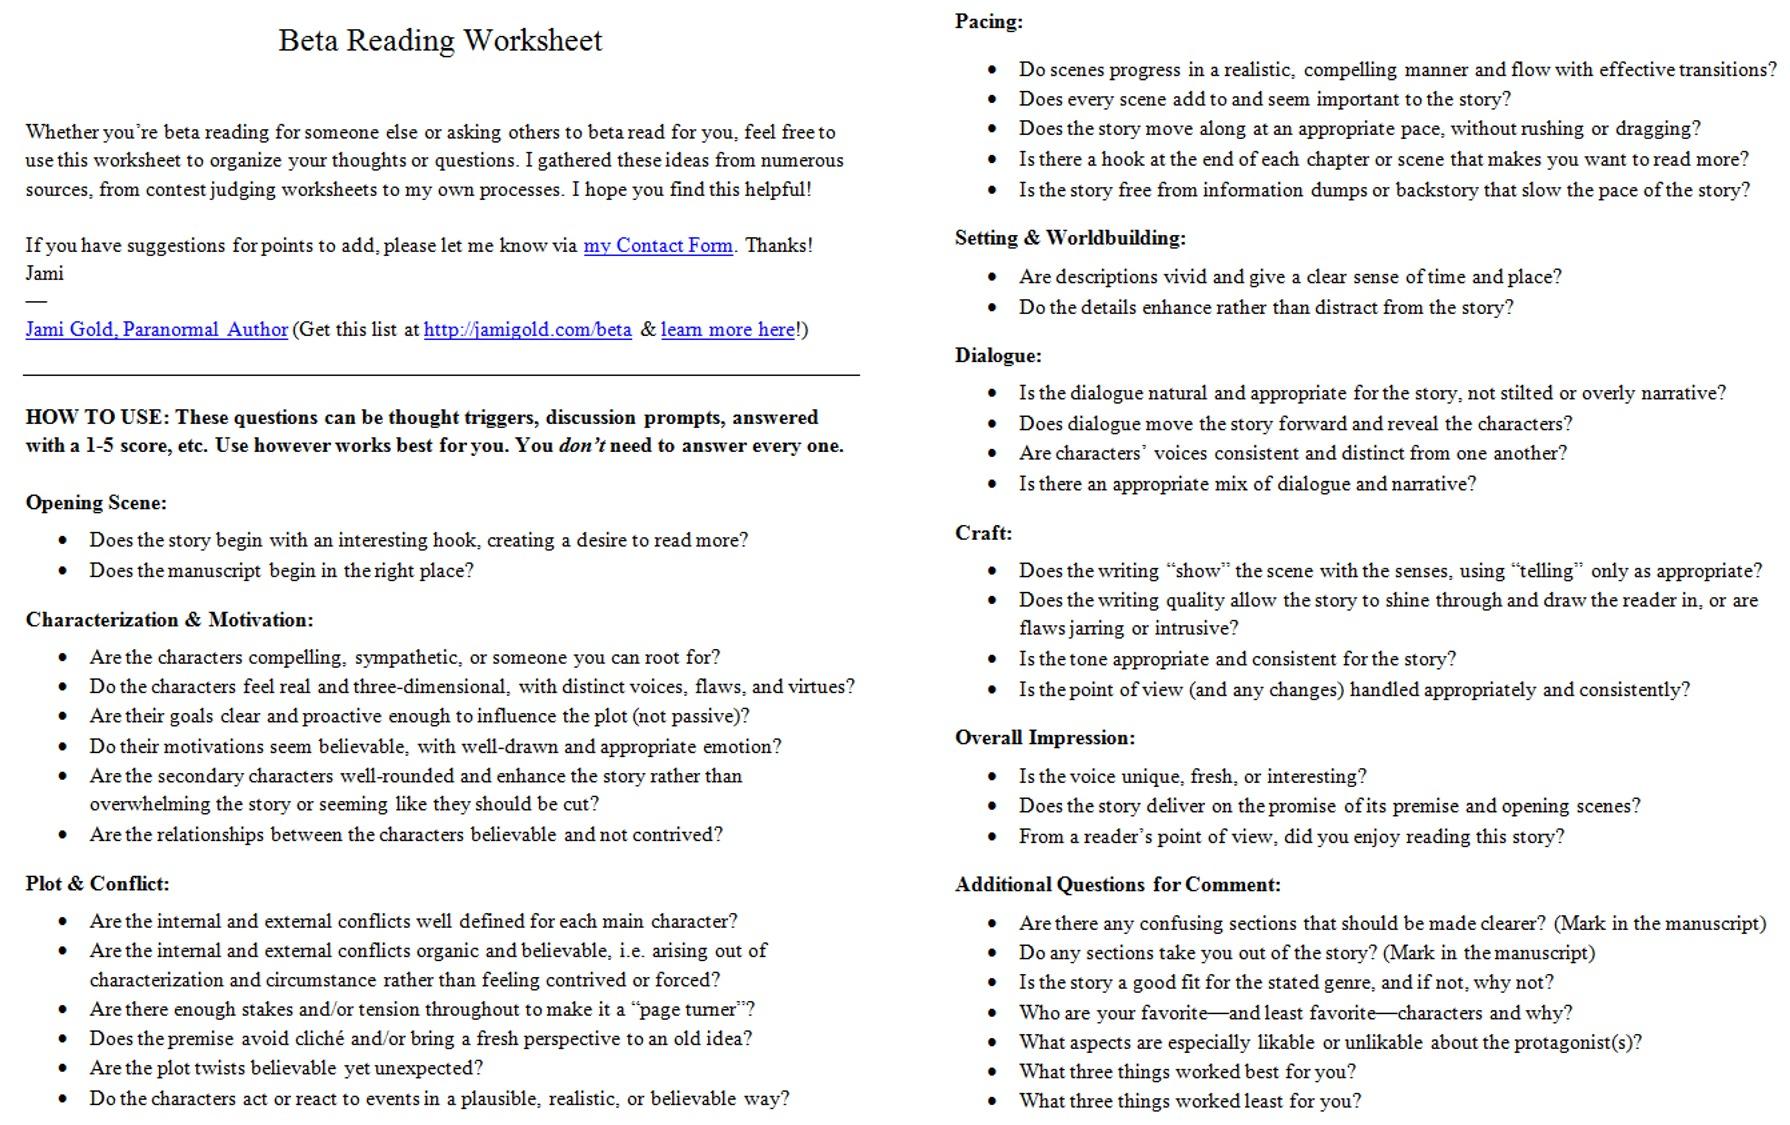 Weirdmailus  Stunning Worksheets For Writers  Jami Gold Paranormal Author With Interesting Screen Shot Of The Twopage Beta Reading Worksheet With Captivating Measuring With Unifix Cubes Worksheet Also Super Teachers Worksheet In Addition Tree Diagrams Worksheet And The Masque Of The Red Death Literary Analysis Worksheet As Well As Genetic Mutations Worksheet Additionally Worksheets For Grade  English Grammar From Jamigoldcom With Weirdmailus  Interesting Worksheets For Writers  Jami Gold Paranormal Author With Captivating Screen Shot Of The Twopage Beta Reading Worksheet And Stunning Measuring With Unifix Cubes Worksheet Also Super Teachers Worksheet In Addition Tree Diagrams Worksheet From Jamigoldcom